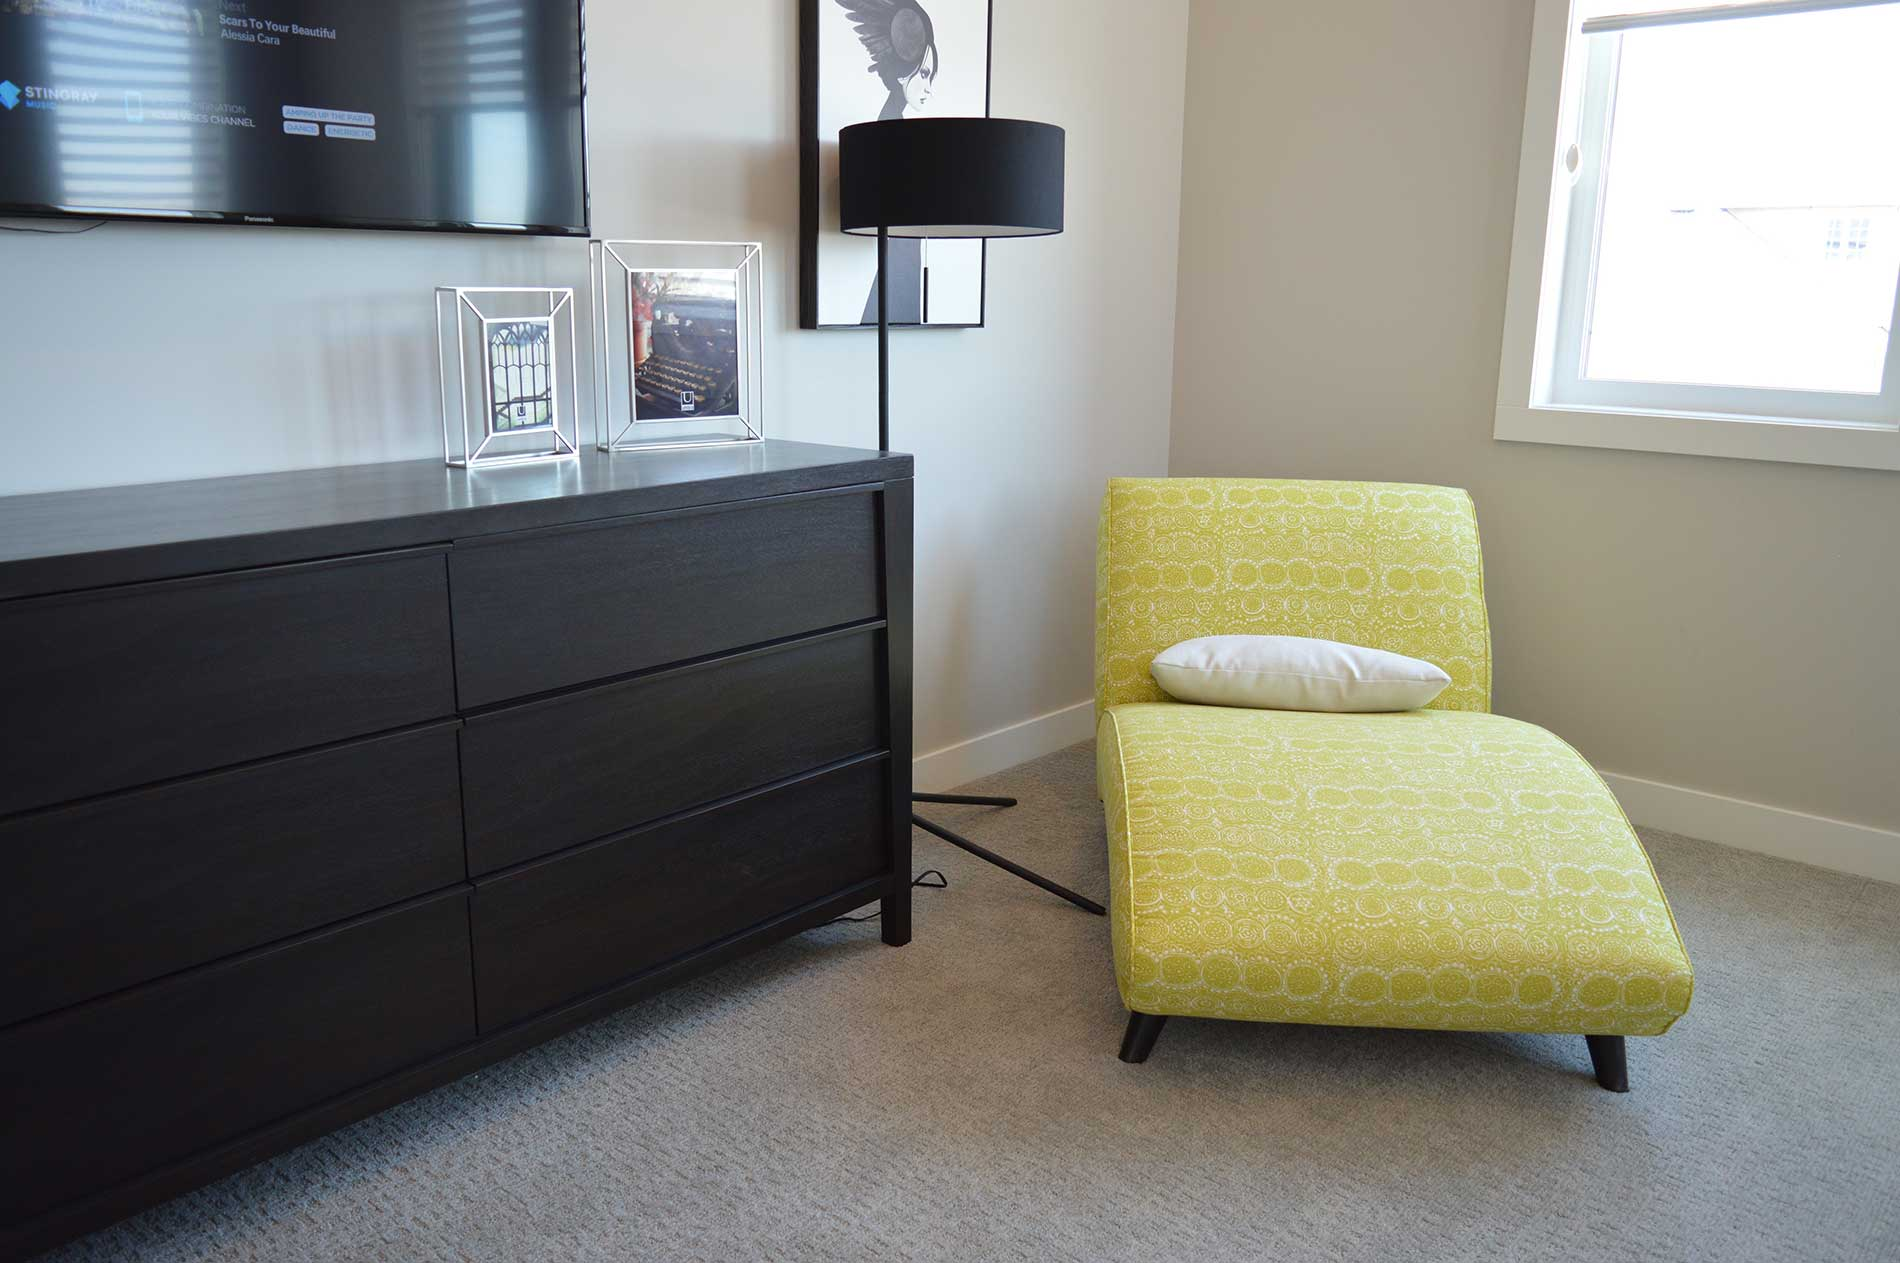 Yellow chaise lounge next to a brown dresser